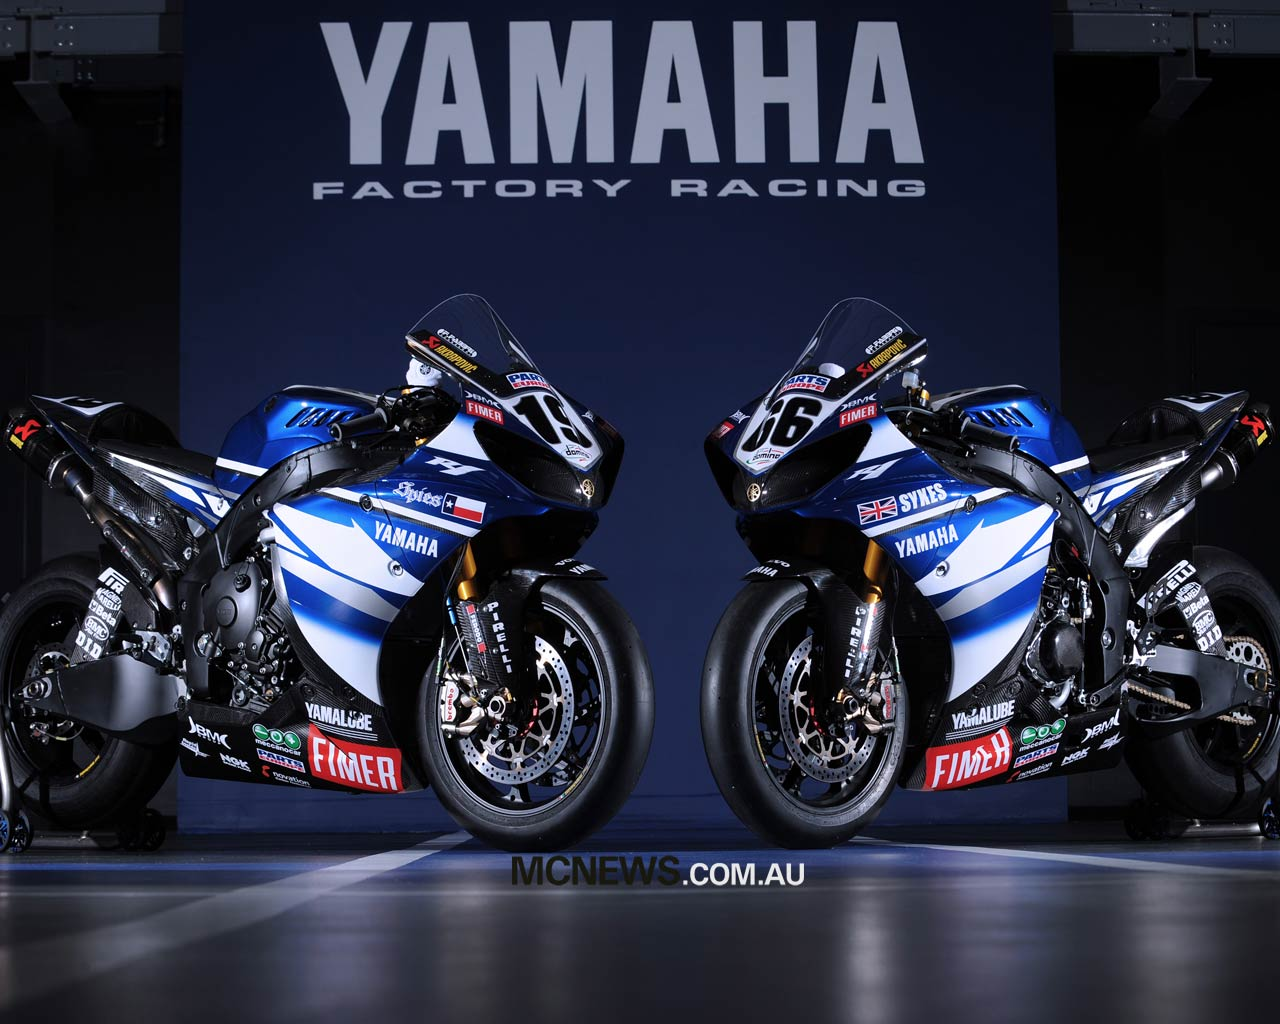 Wallpaper Yamaha Super Bikes: Yamaha Wallpaper Hd Wallpapers 1280x1024px